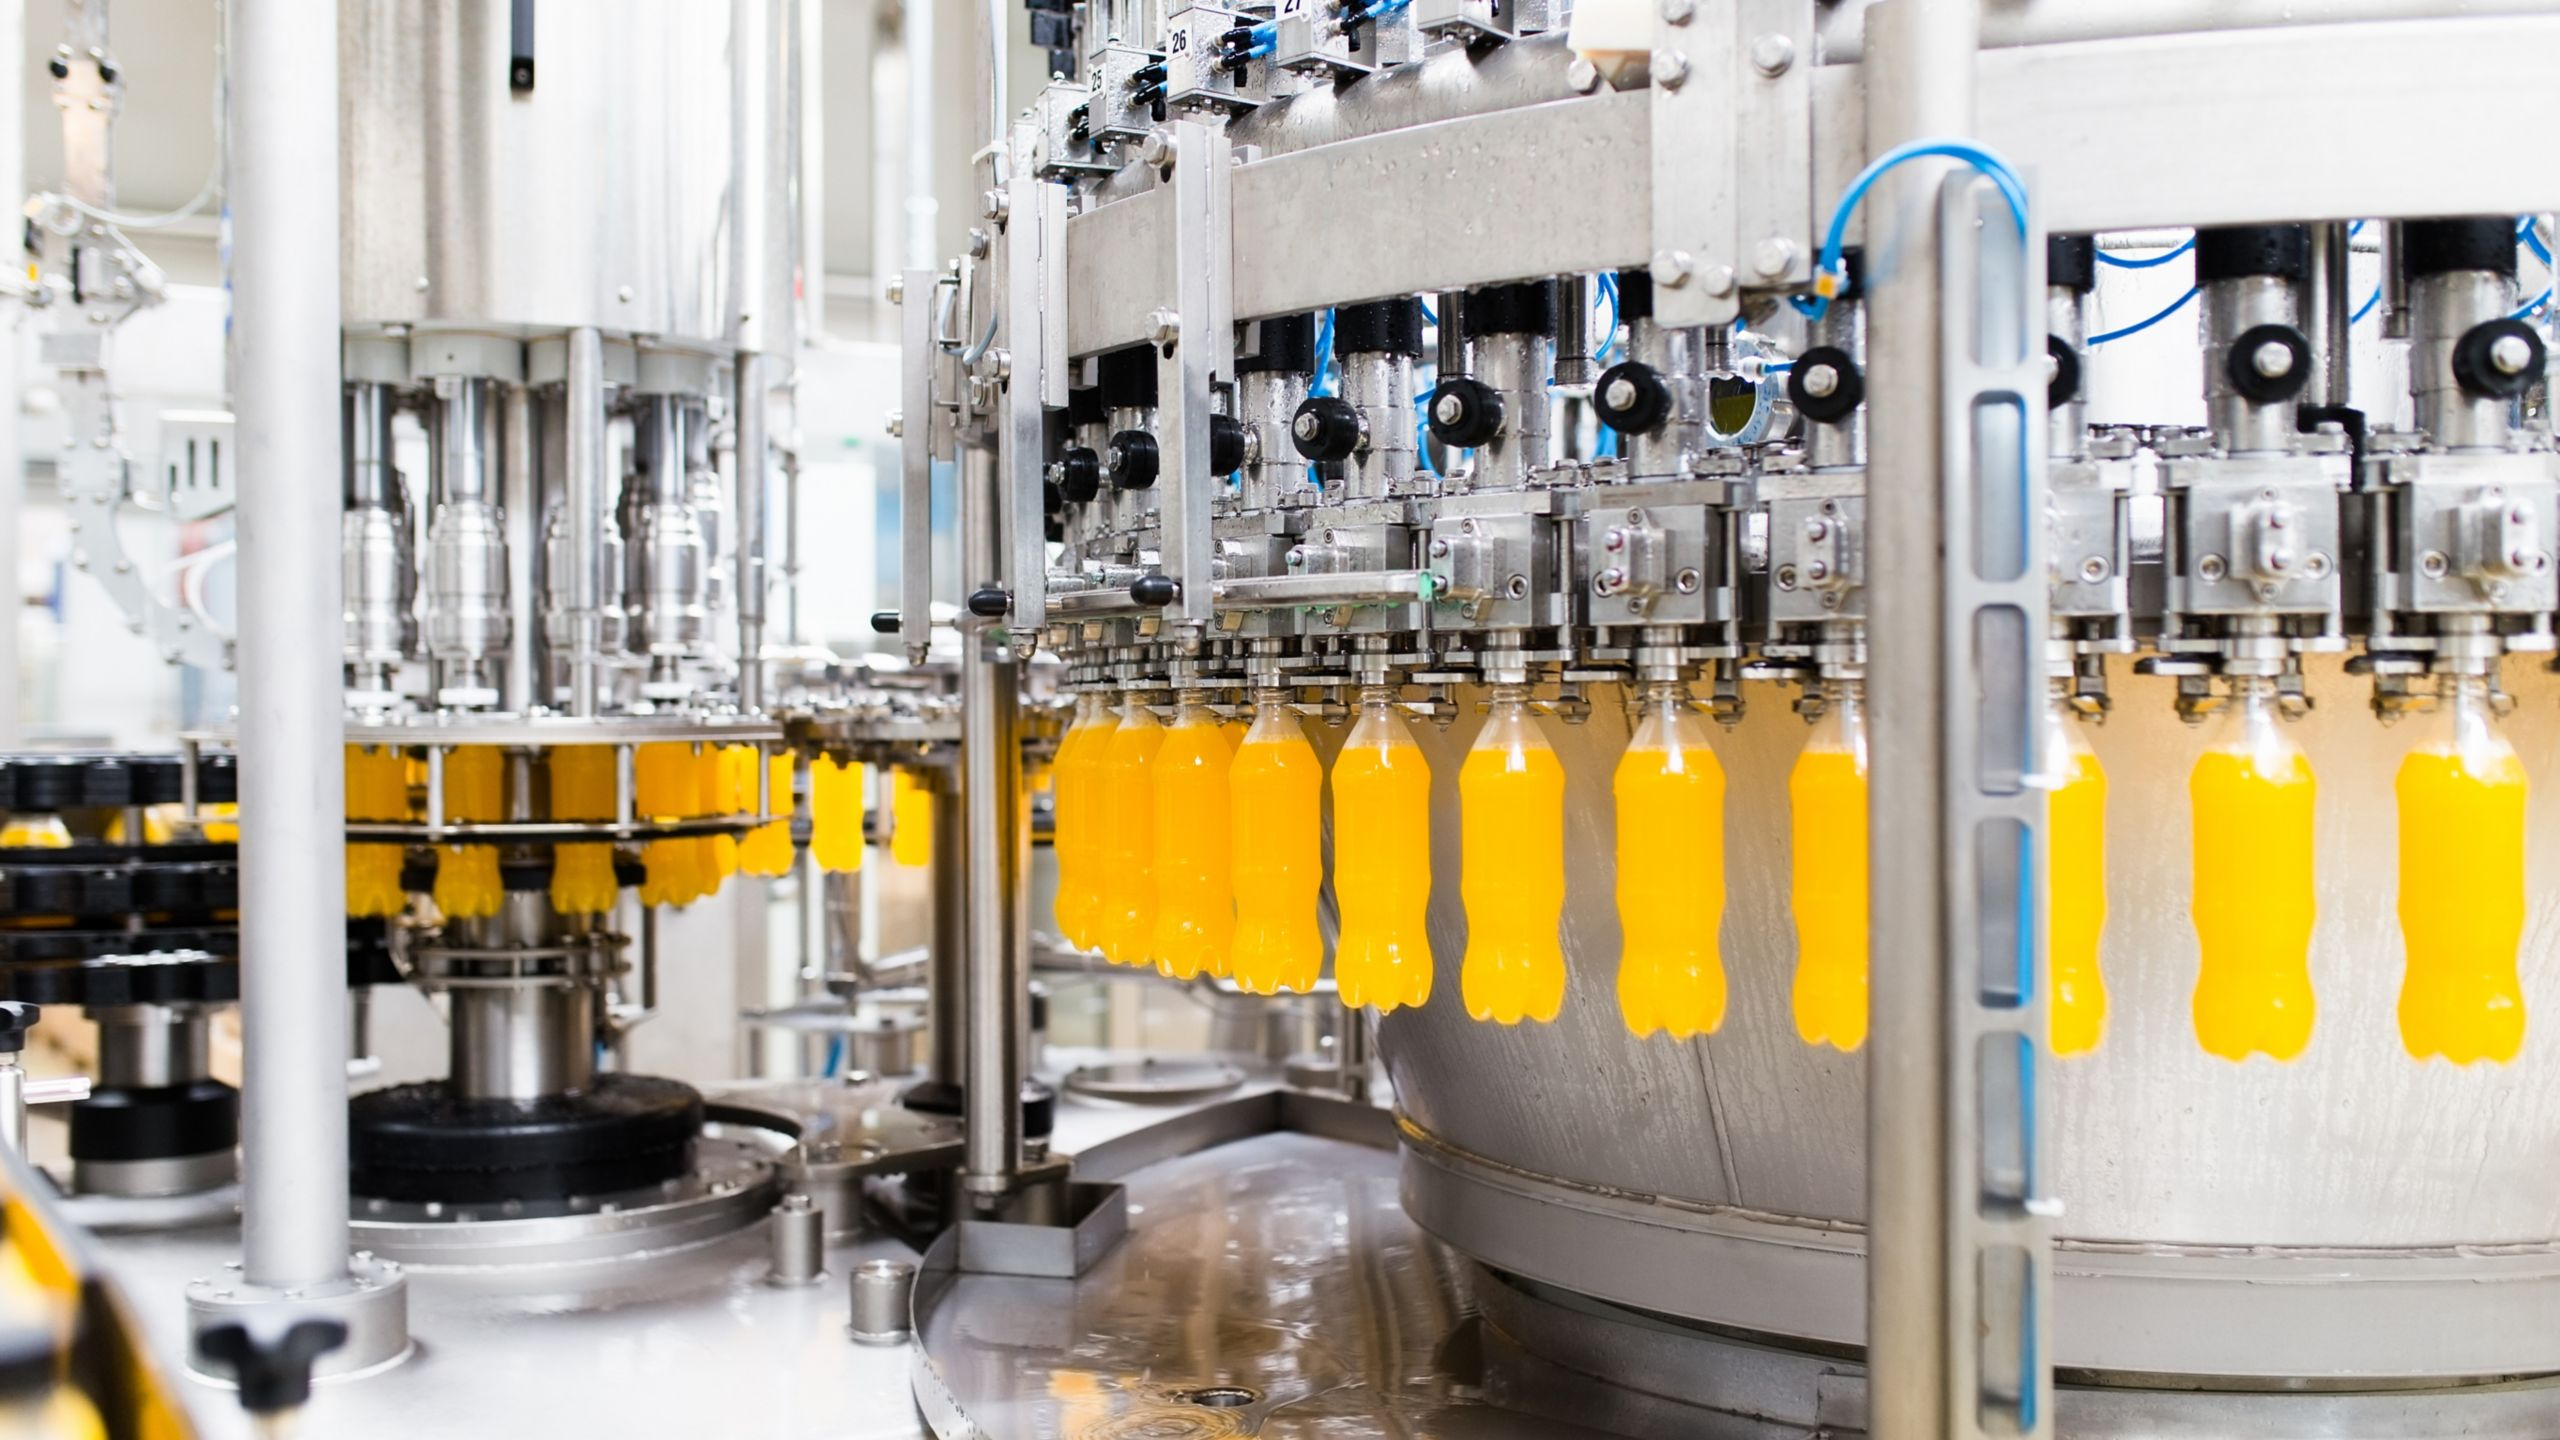 Beverage manufacturing facility displaying the automated process of filling bottles